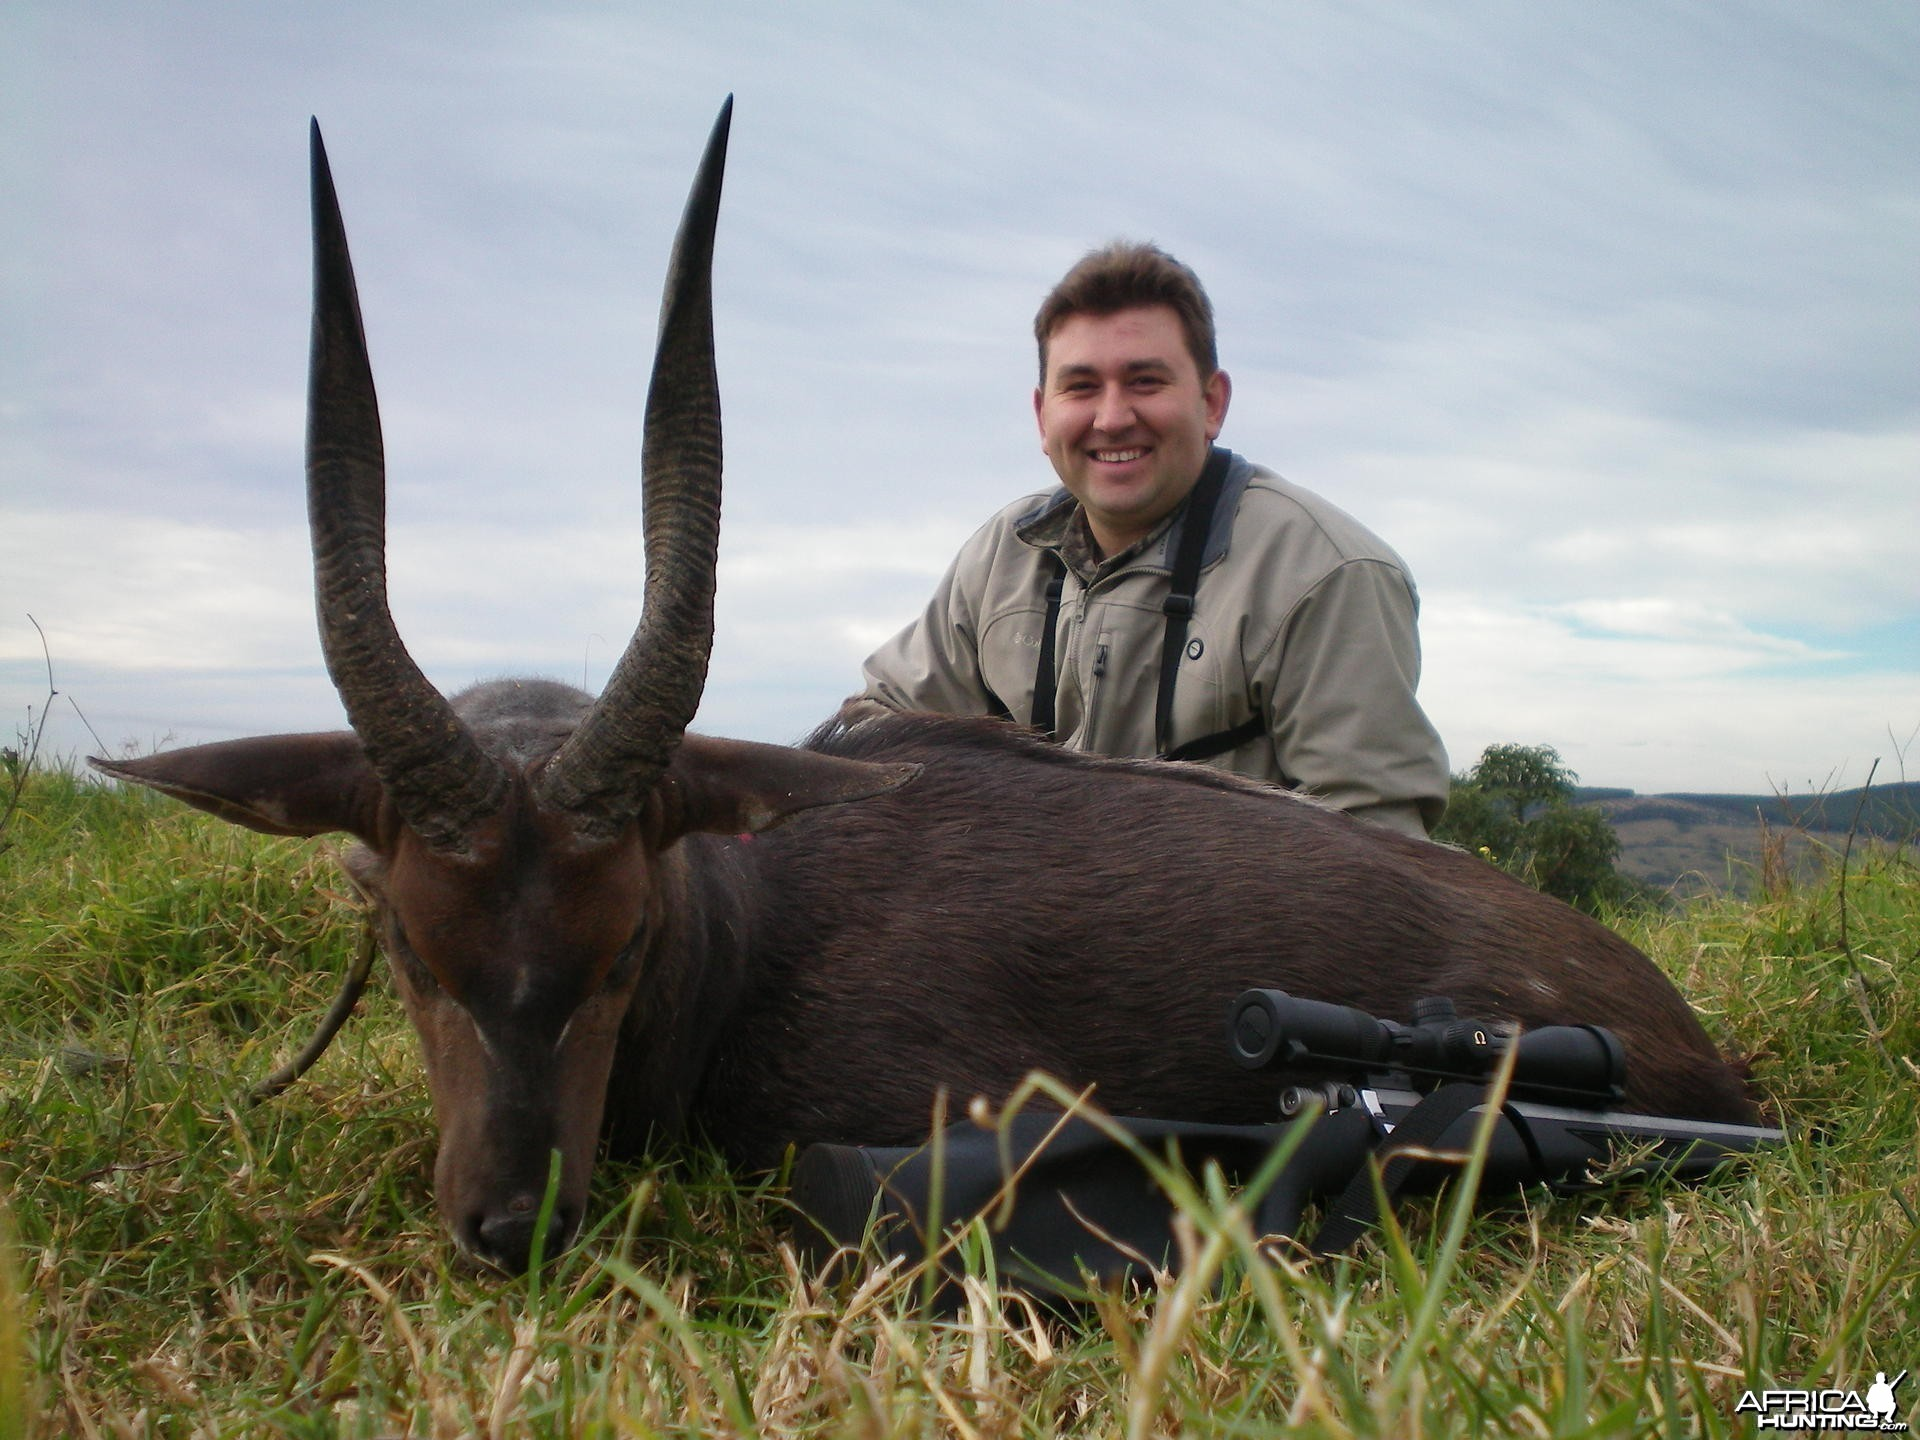 15 inch Bushbuck hunted with muzzleloader in the Eastern cape